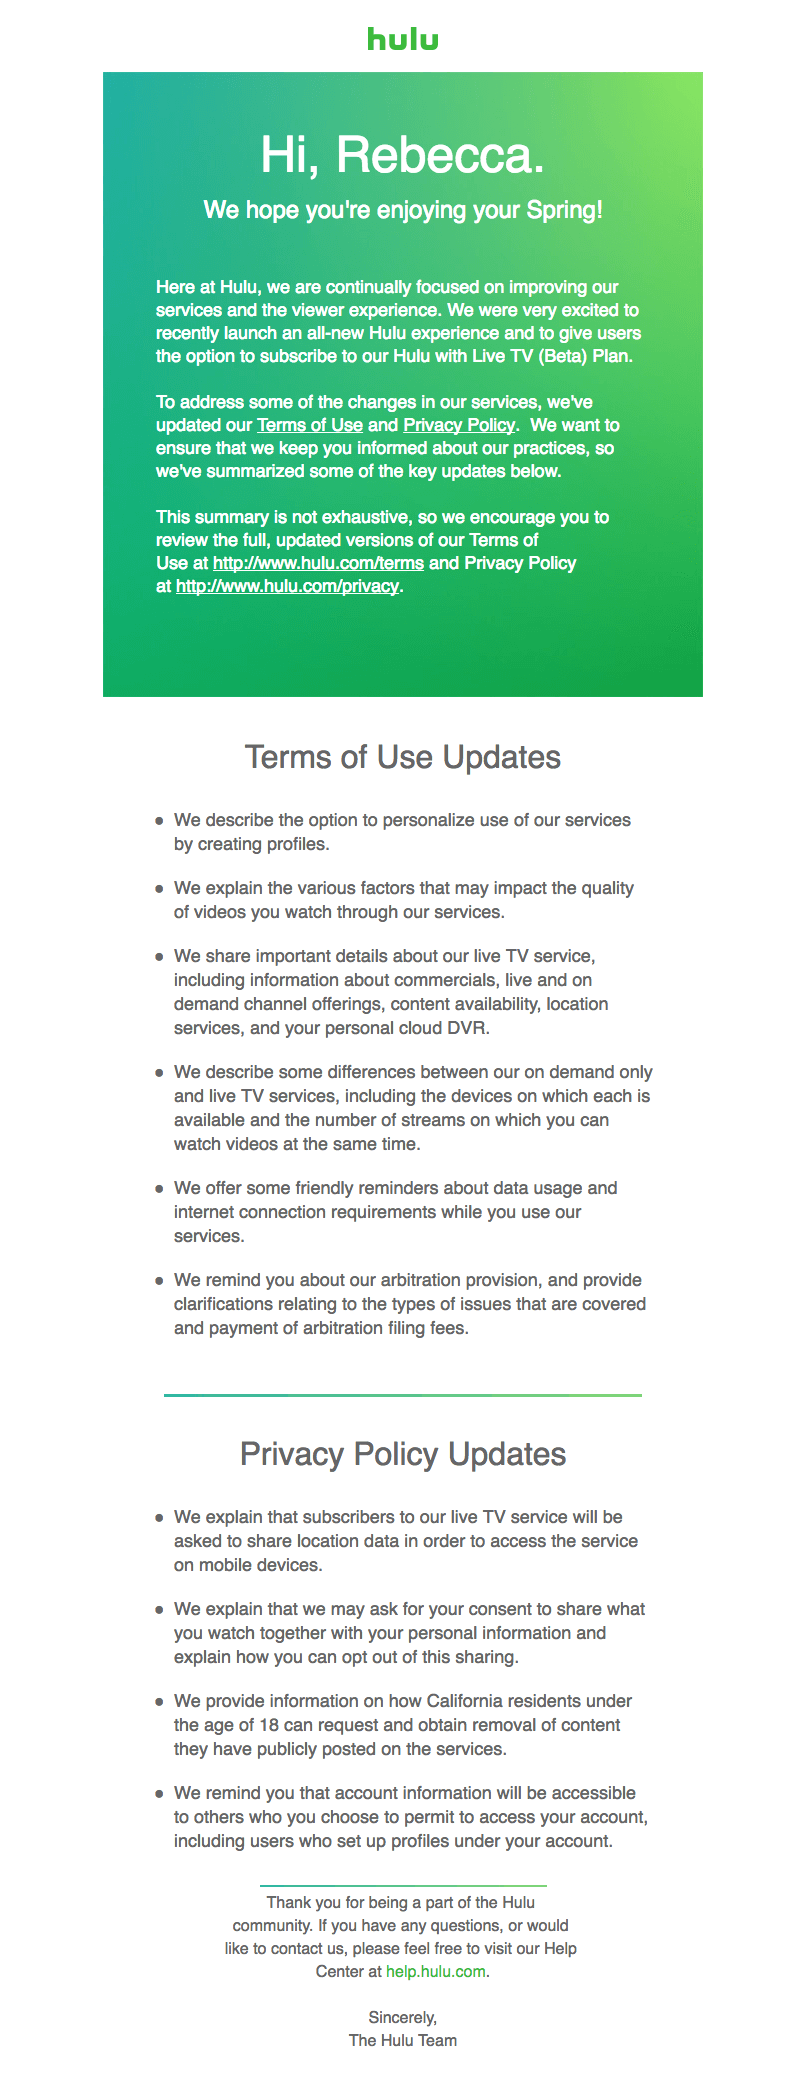 Hulu Terms of Service and Privacy Policy Emails